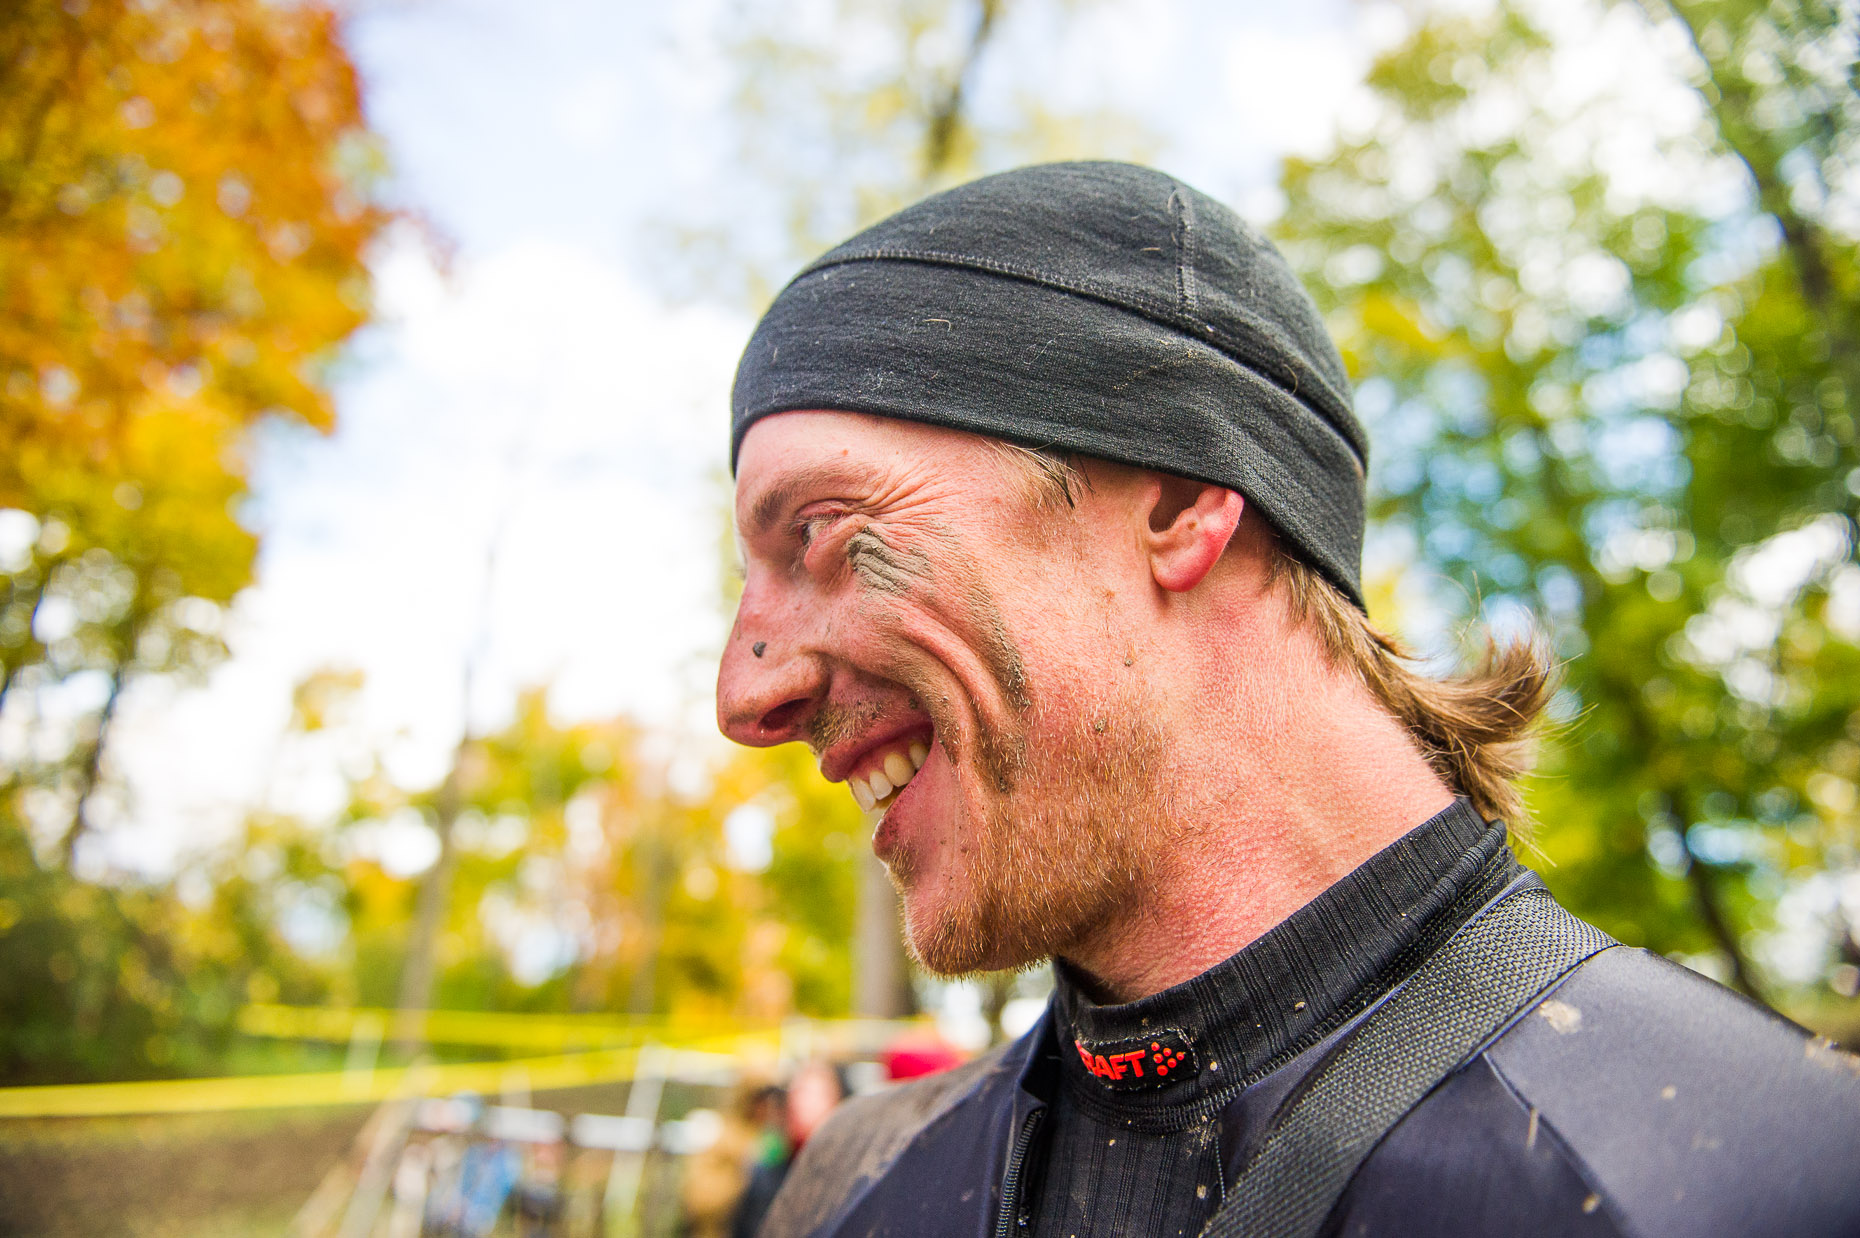 aaron-ingrao-cyclocross-cross-in-the-park-Ethan-johnson-portrait